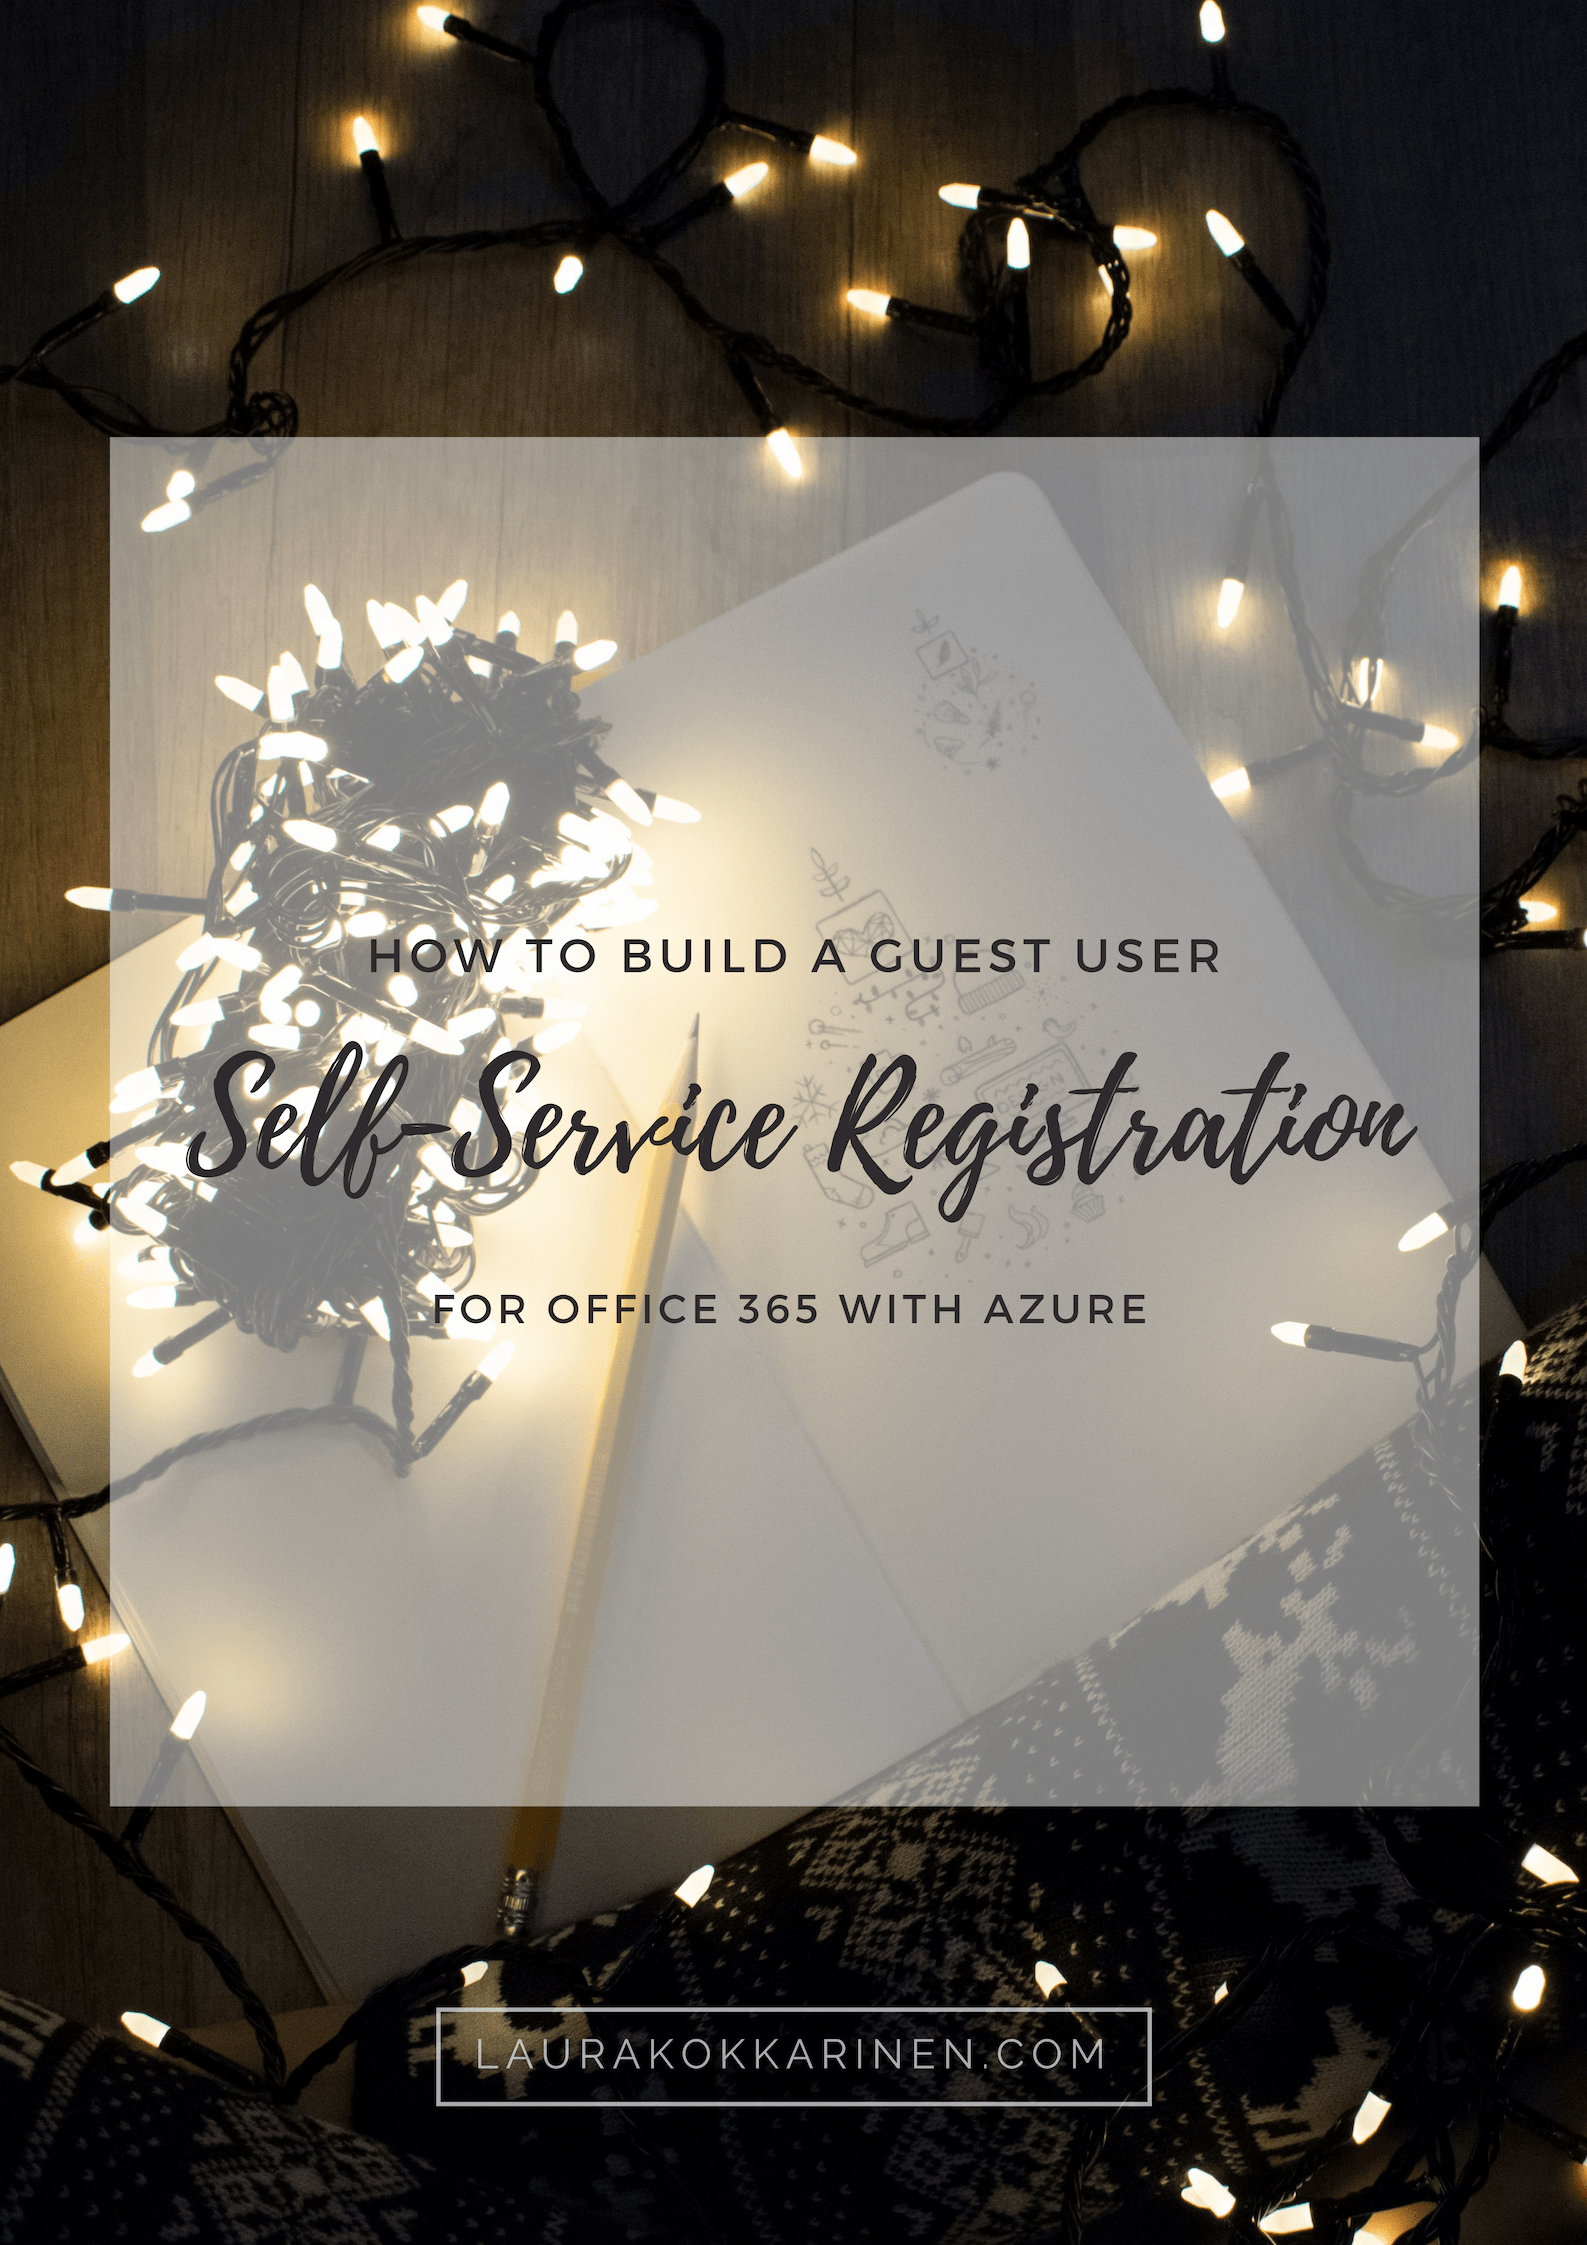 How to build a guest user self-service registration for Office 365